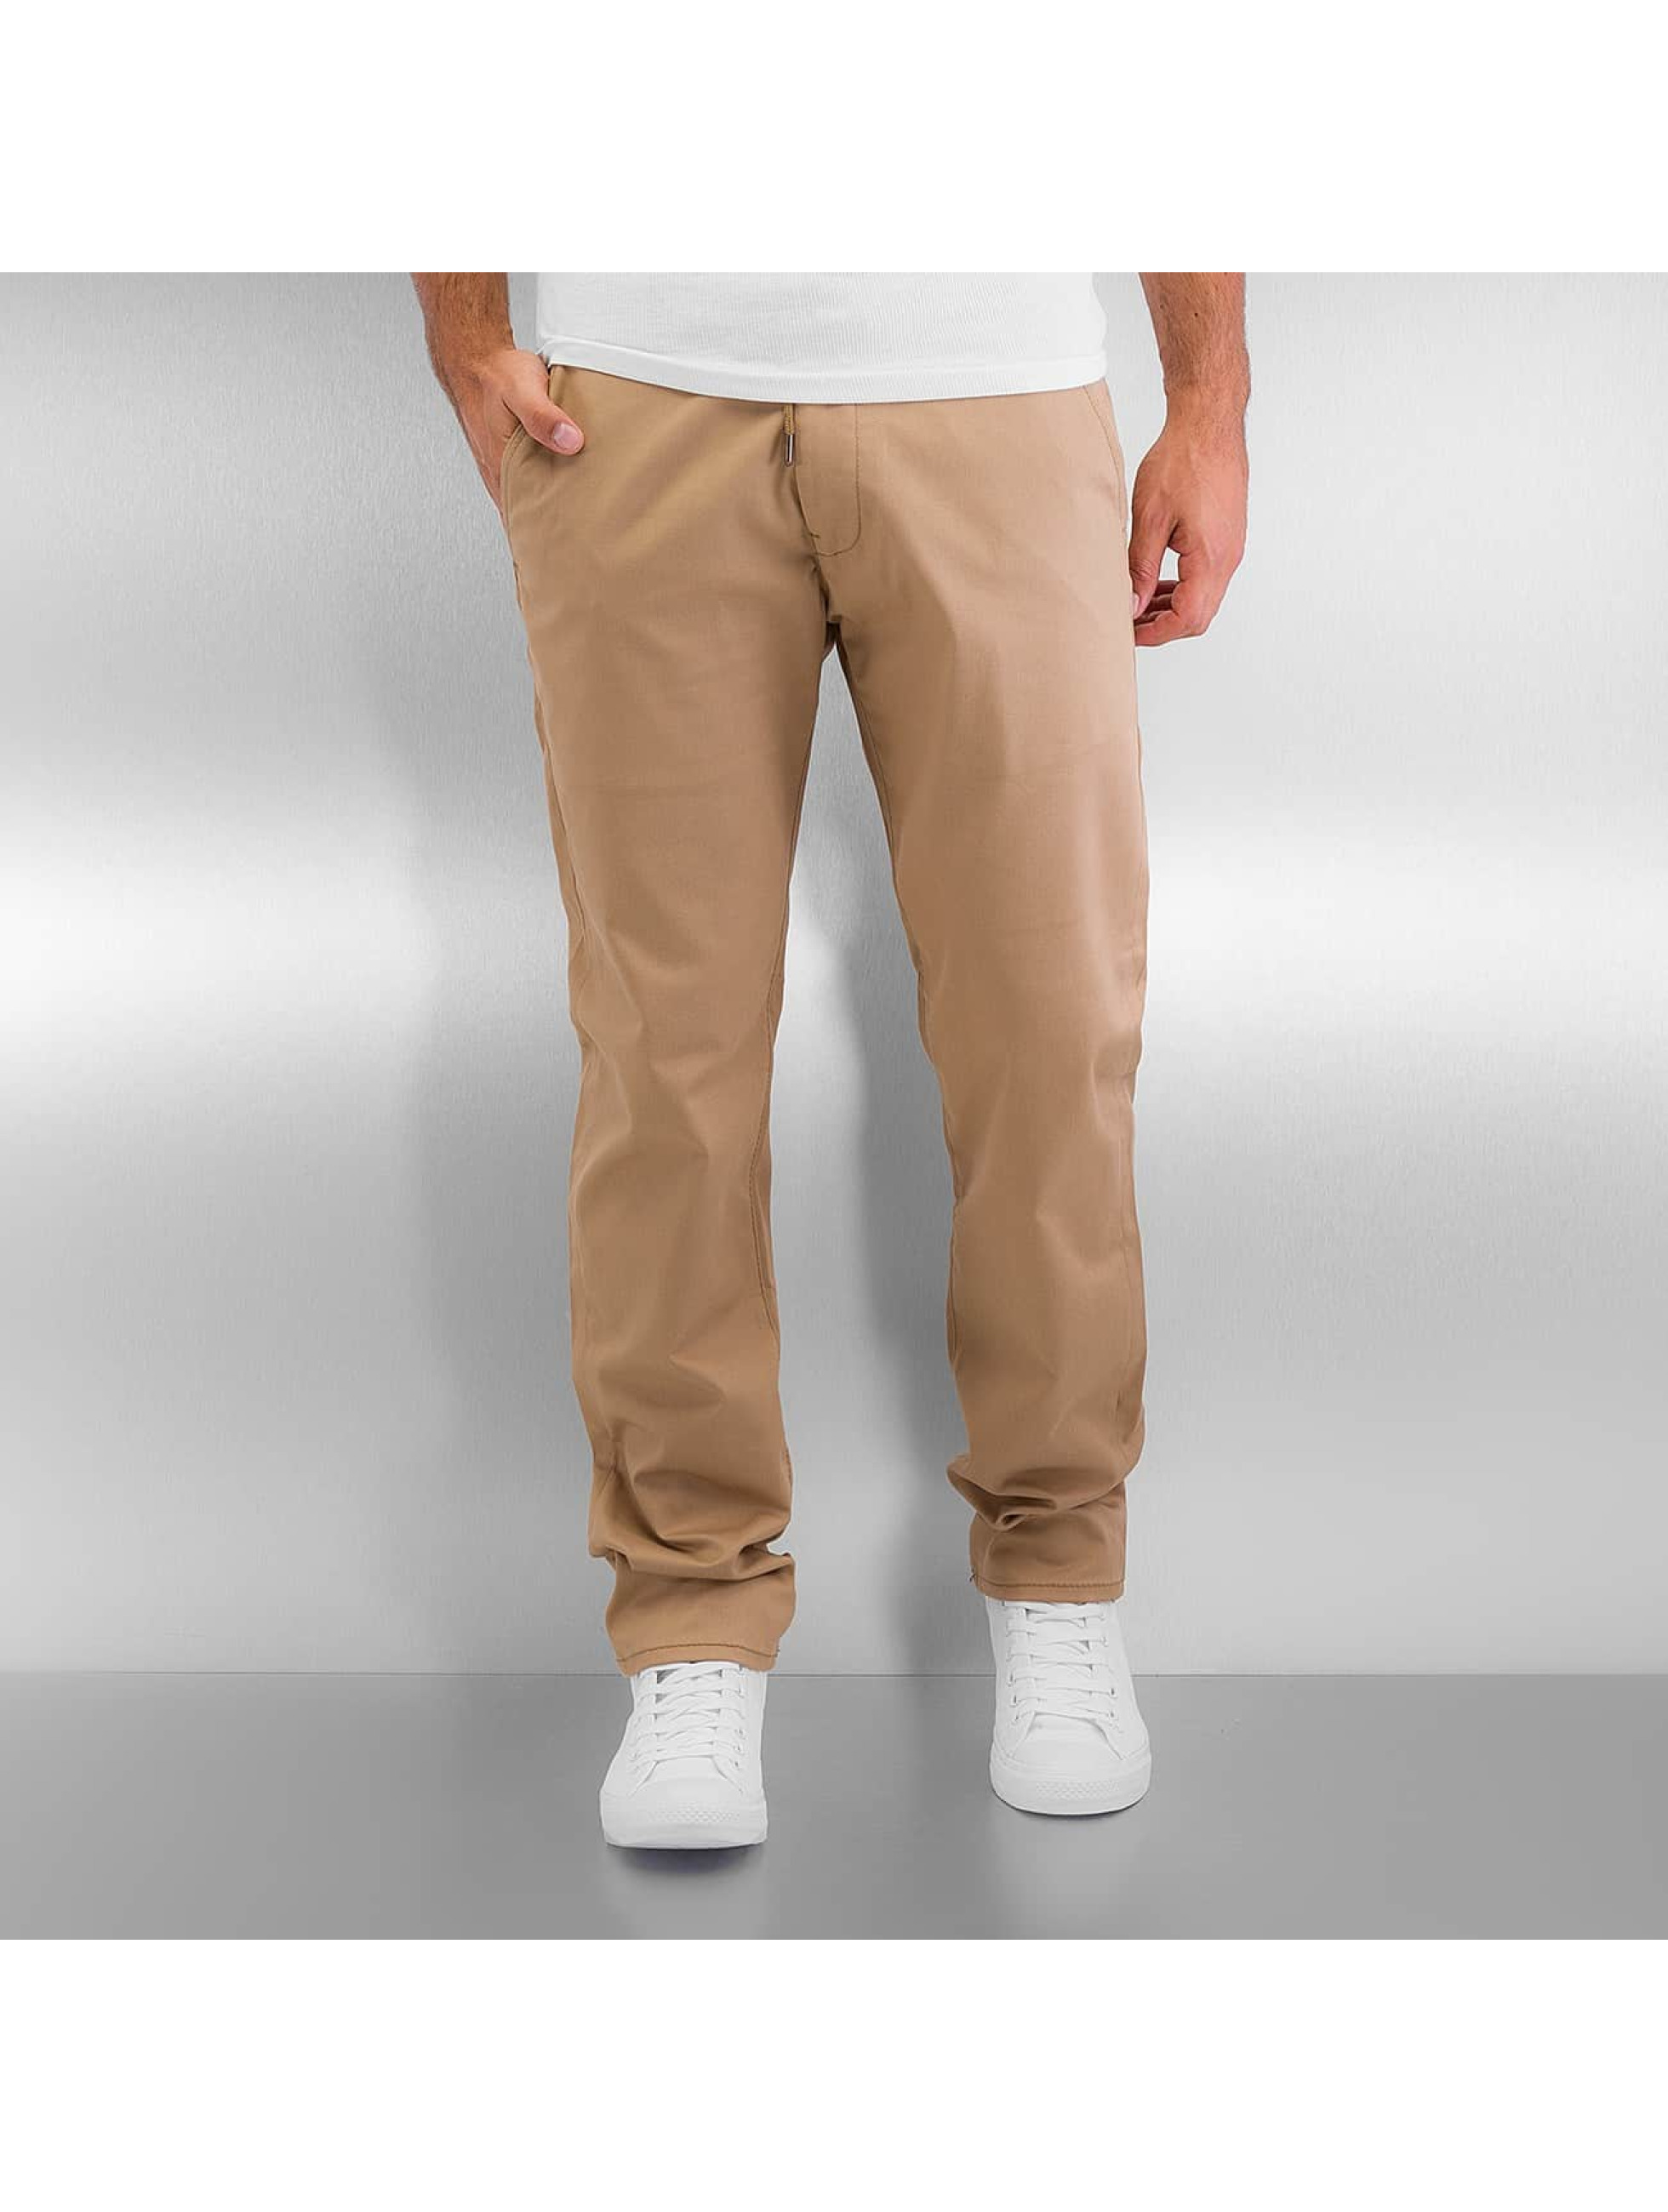 Reell Jeans Reflex Easy Pants Sand